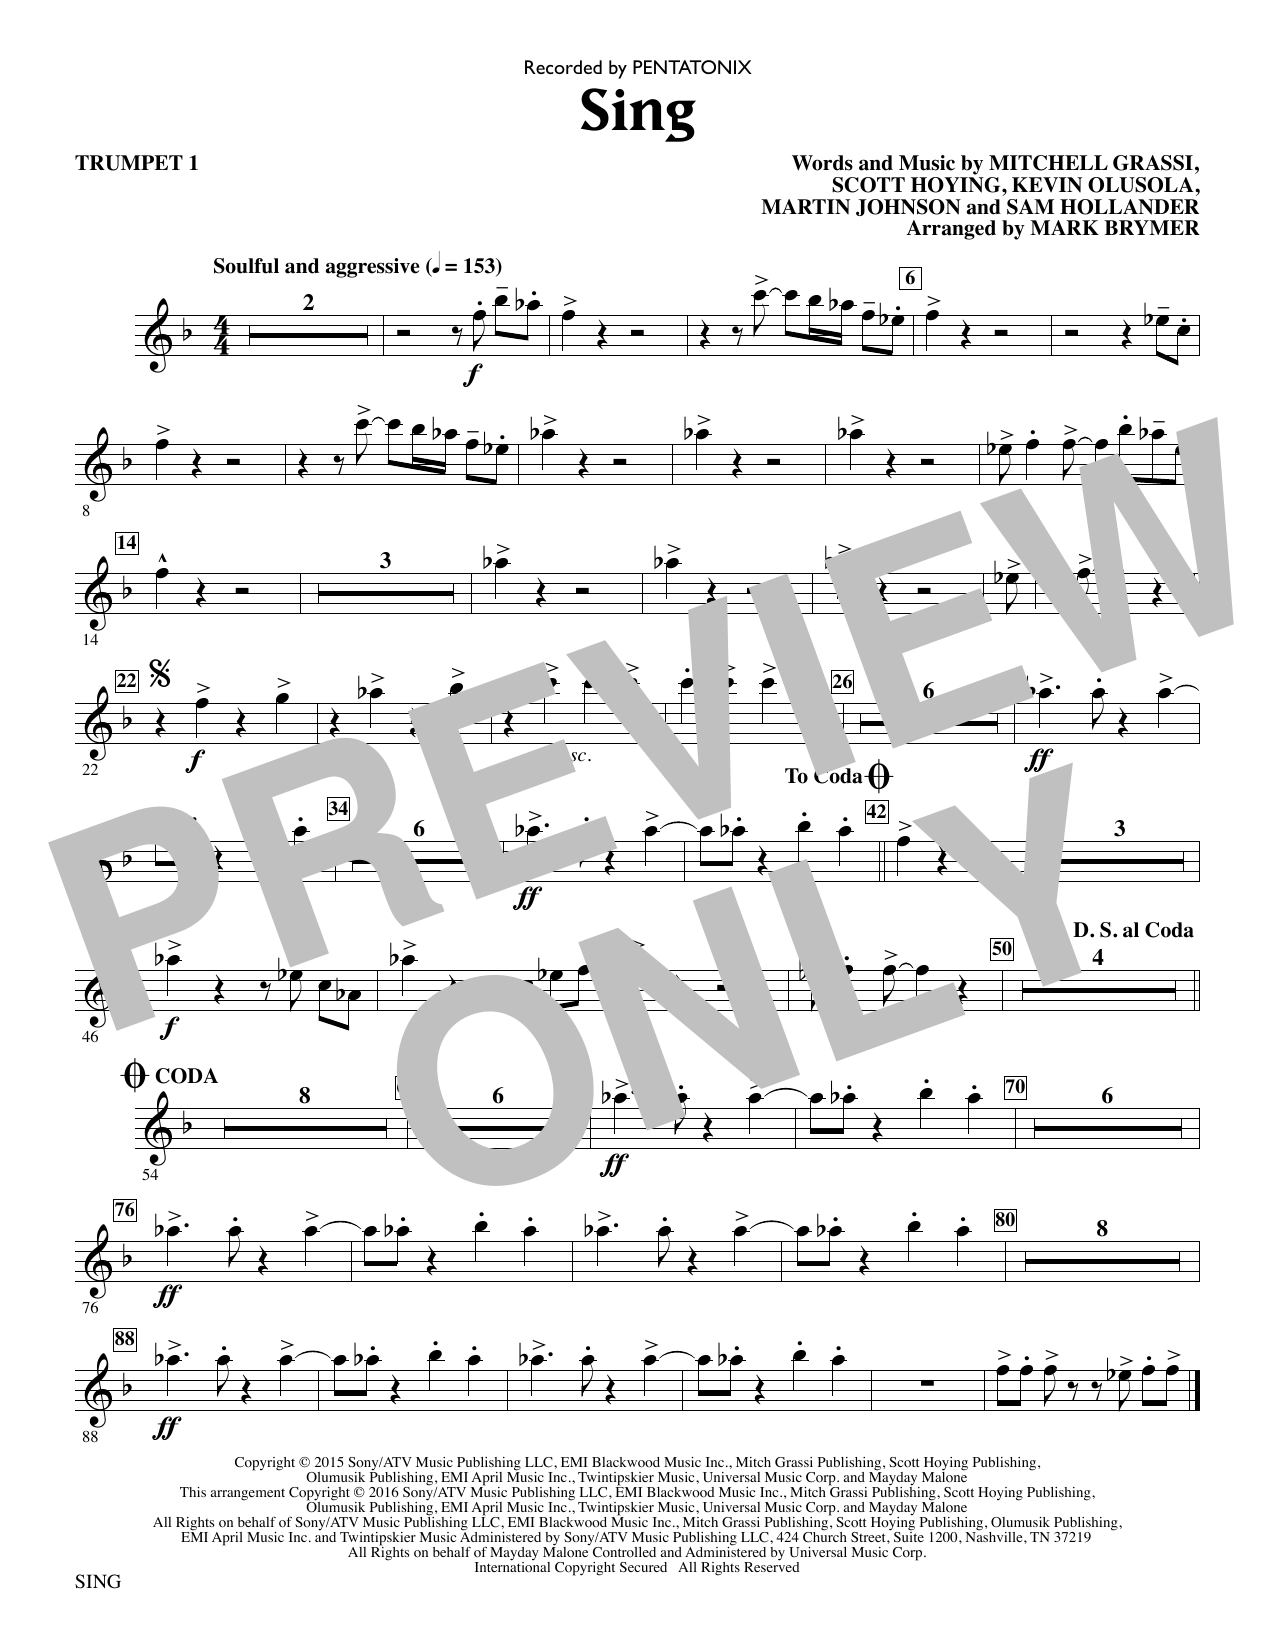 Sing (complete set of parts) sheet music for orchestra/band by Scott Hoying, Kevin Olusola, Mark Brymer, Martin Johnson and Sam Hollander. Score Image Preview.